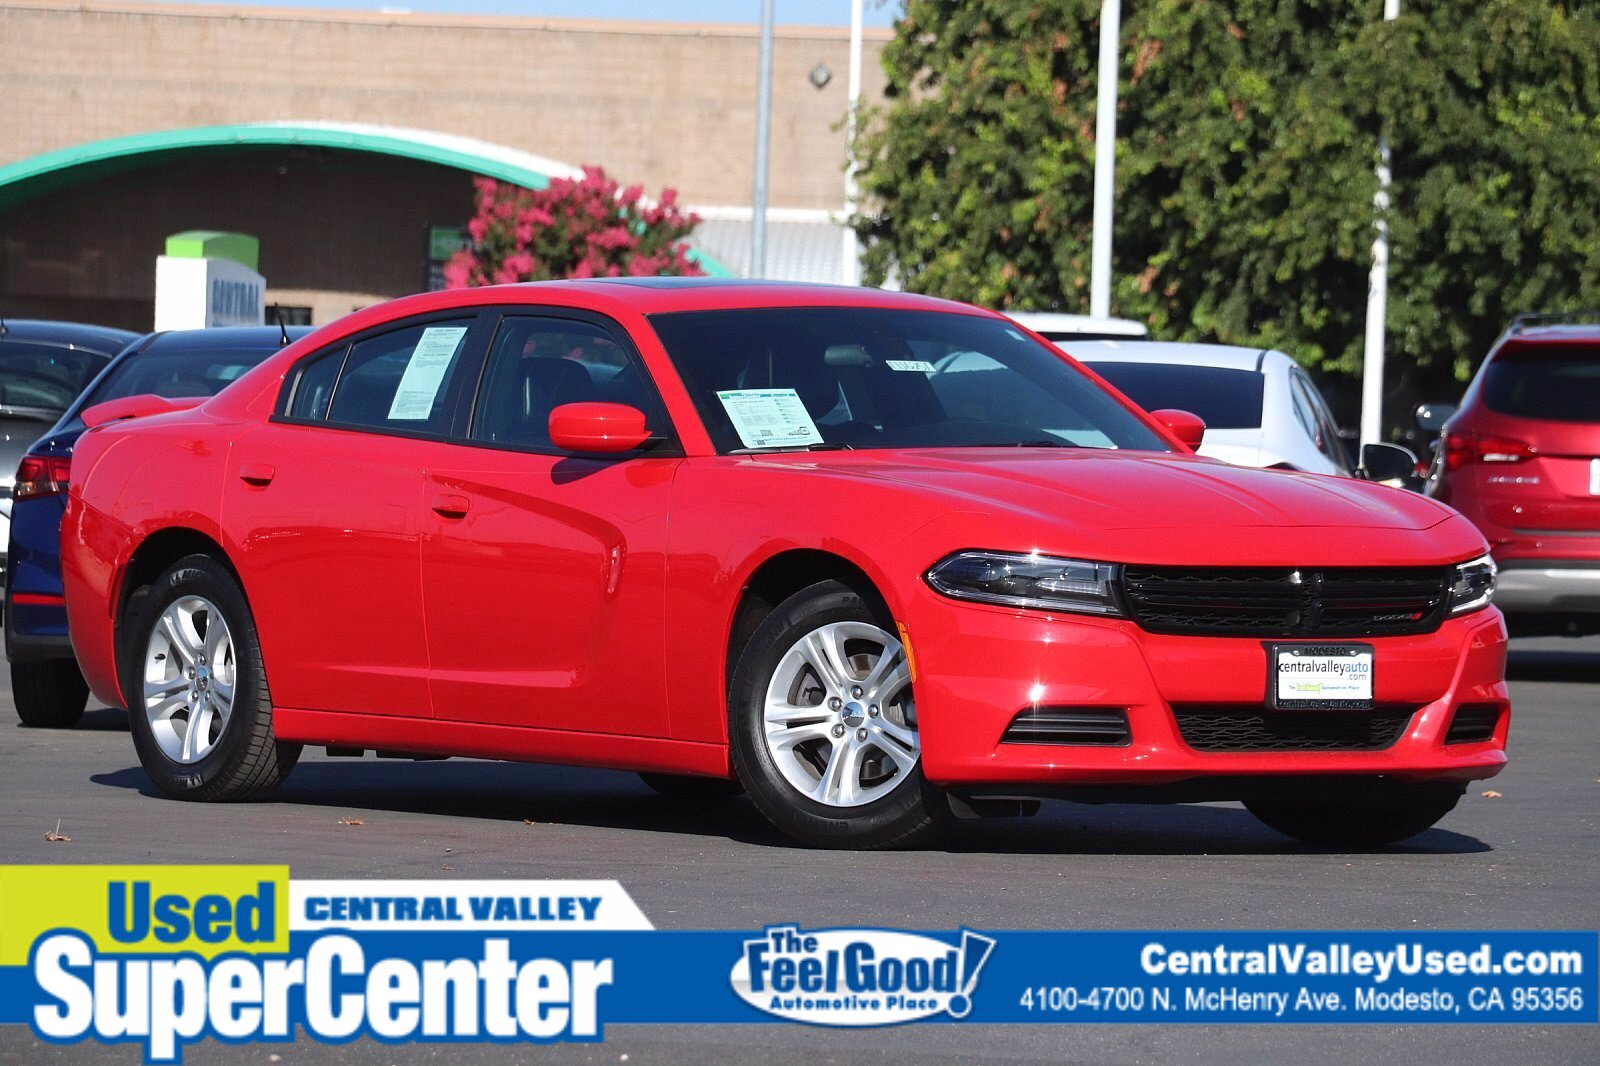 Used Dodge Charger Modesto Ca